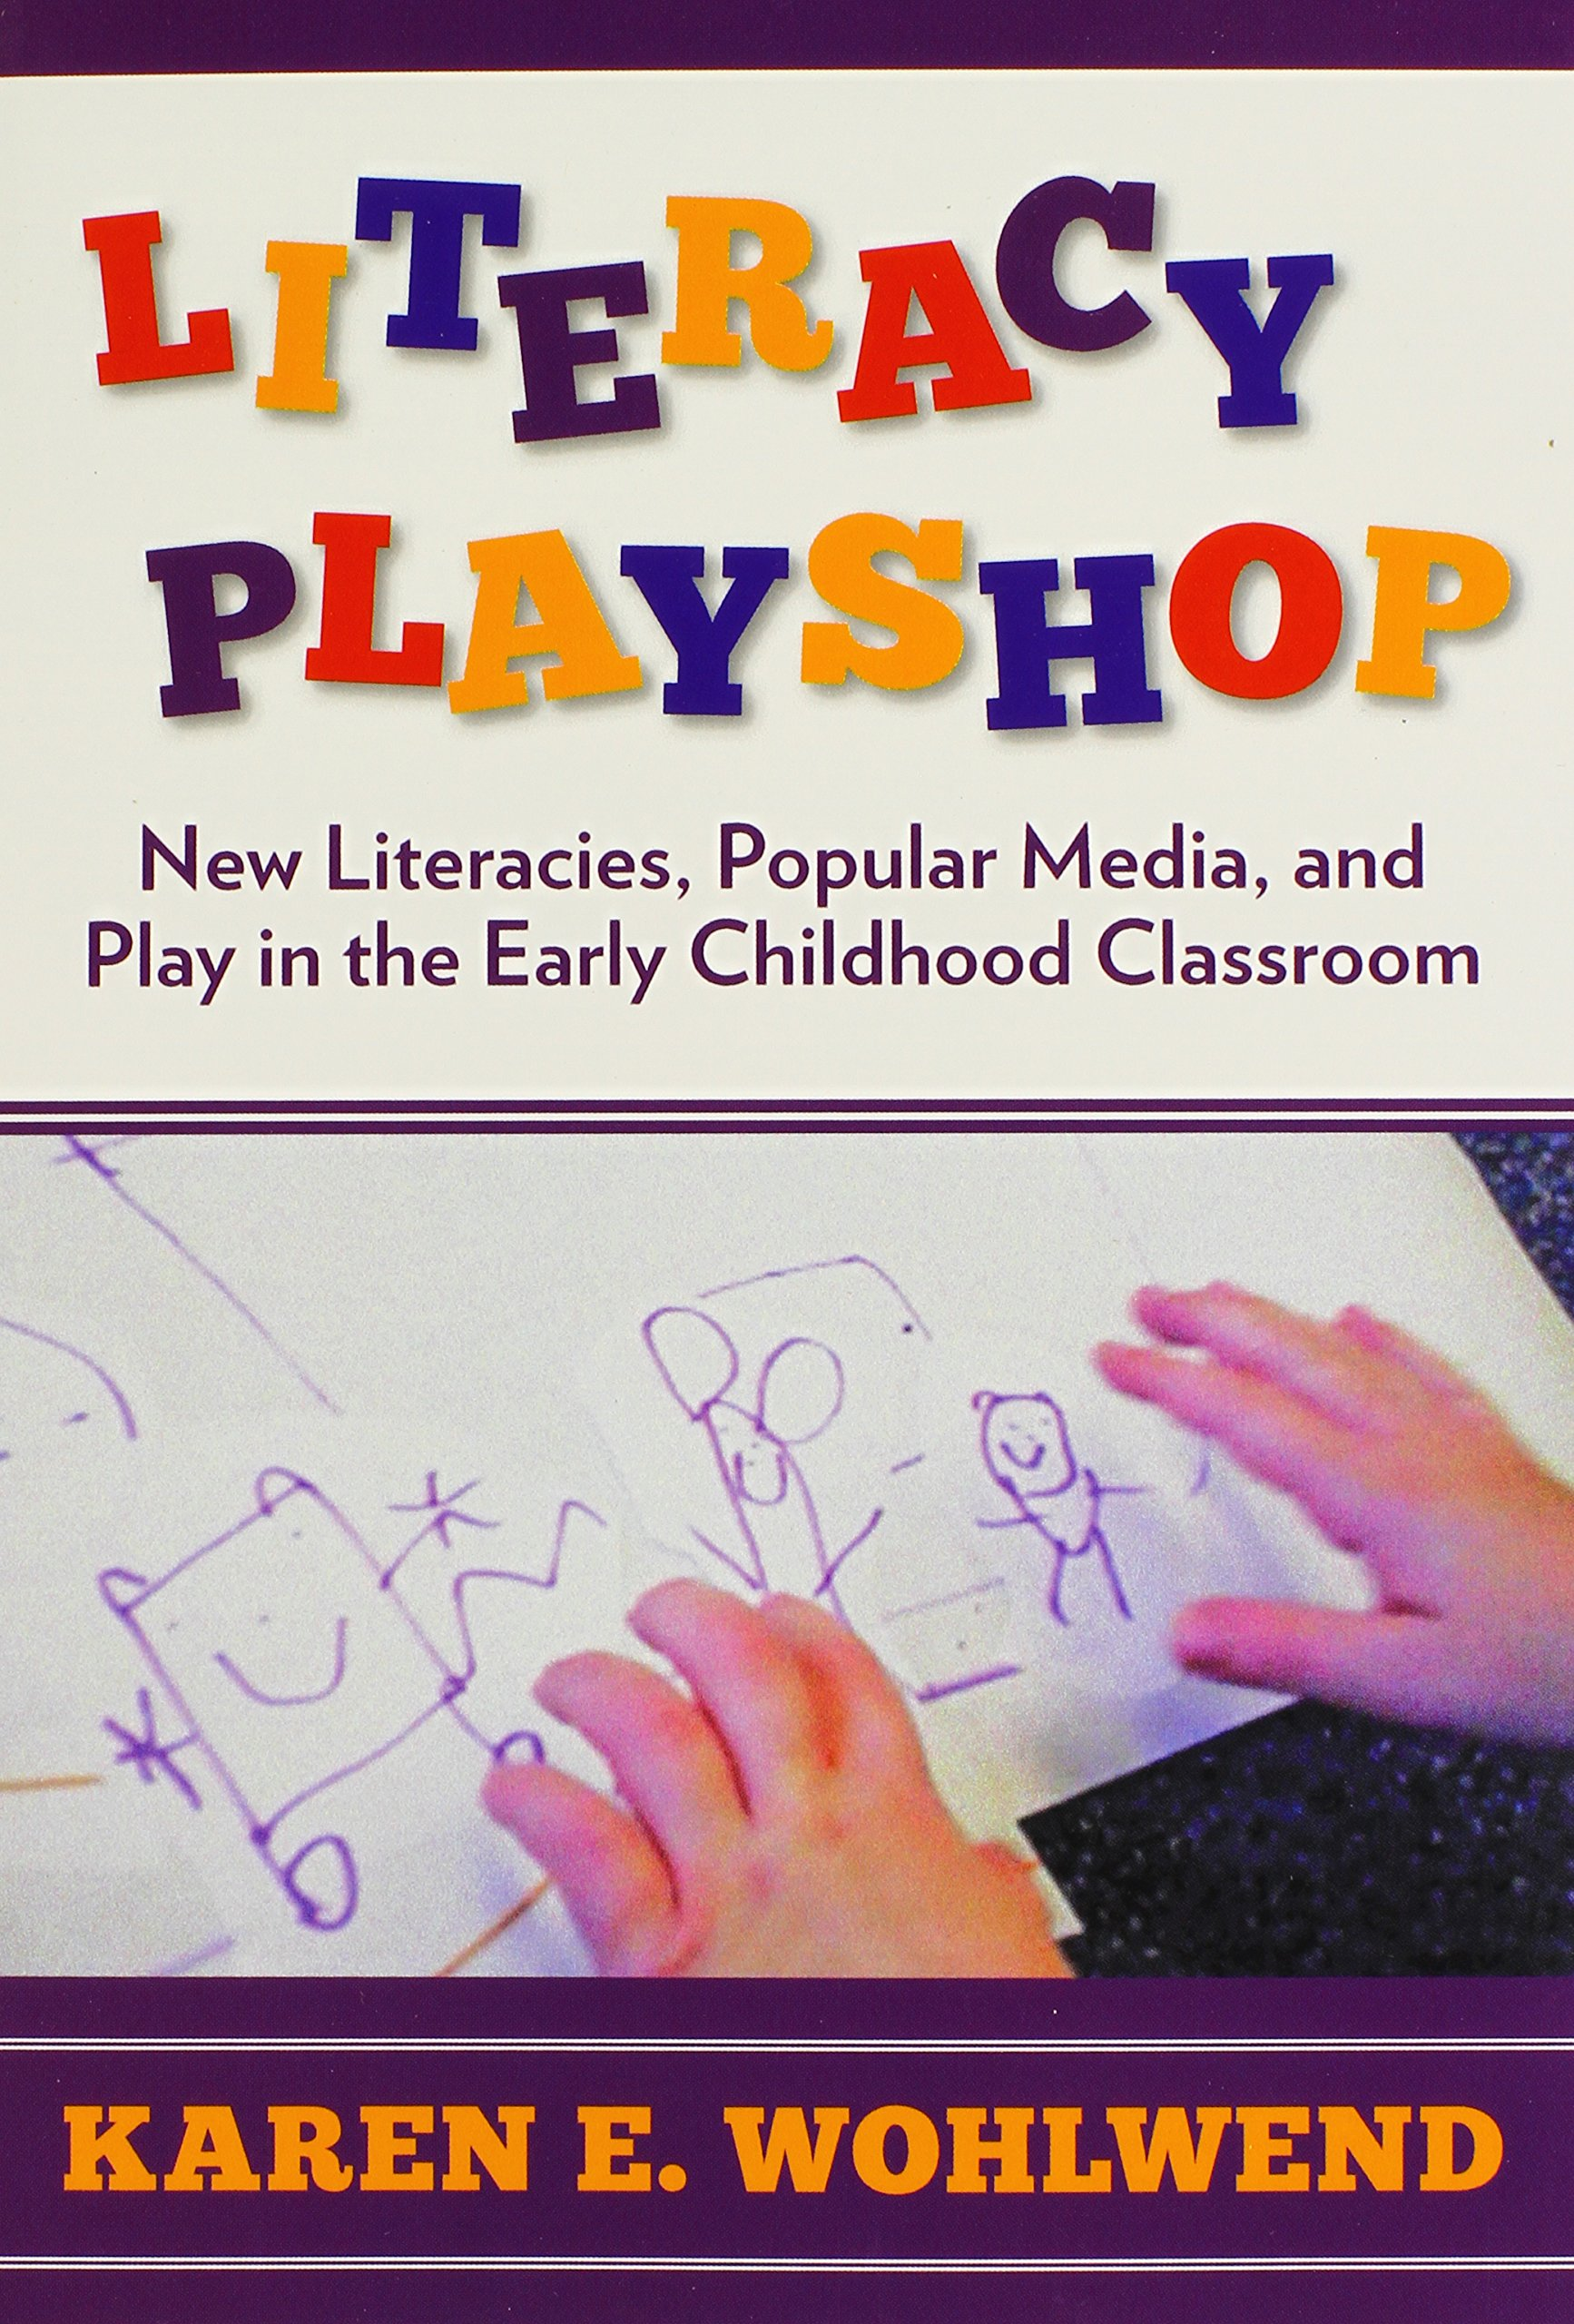 Literacy Playshop: New Literacies, Popular Media, and Play in the Early Childhood Classroom (Language and Literacy Series) ebook